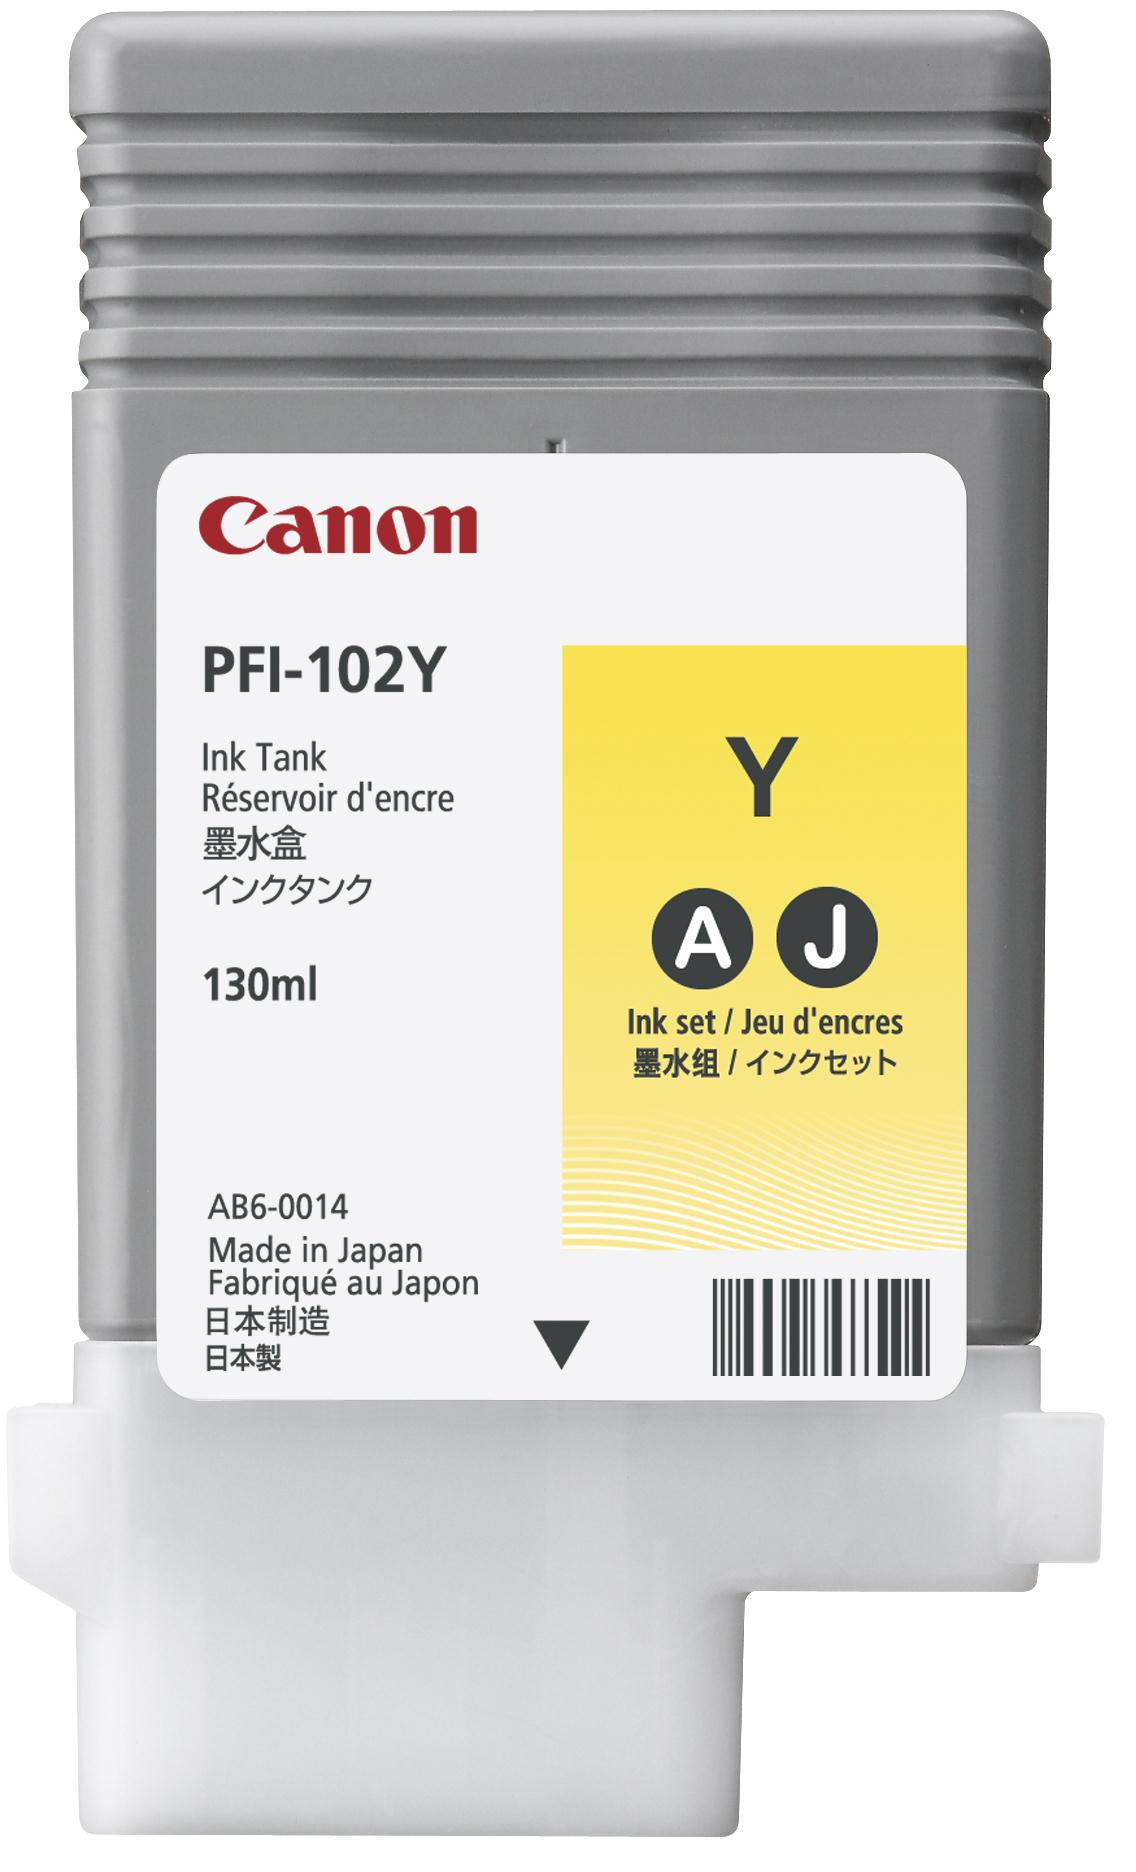 Canon PF1-102Y Ink Tank Yellow Ref 0898B001AA